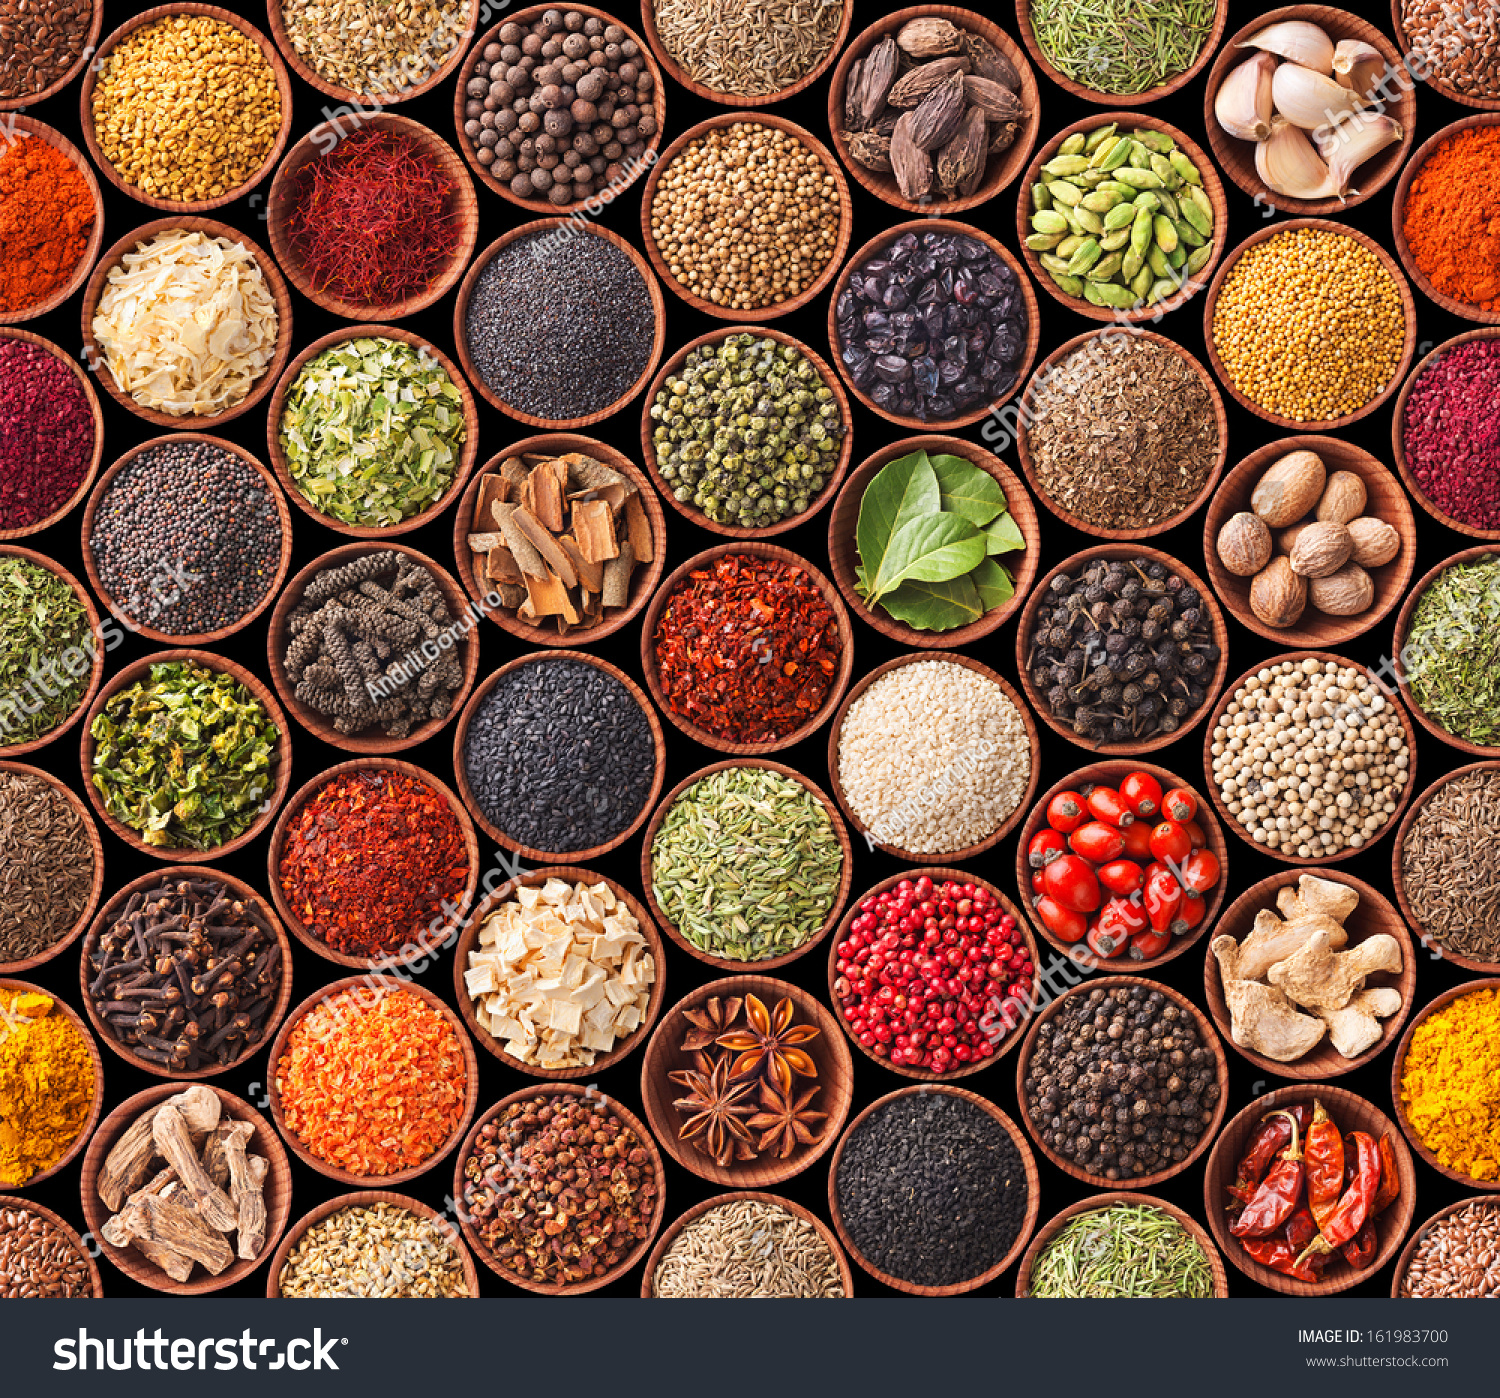 Spices Name In Tamil  Knowledge Well-7784